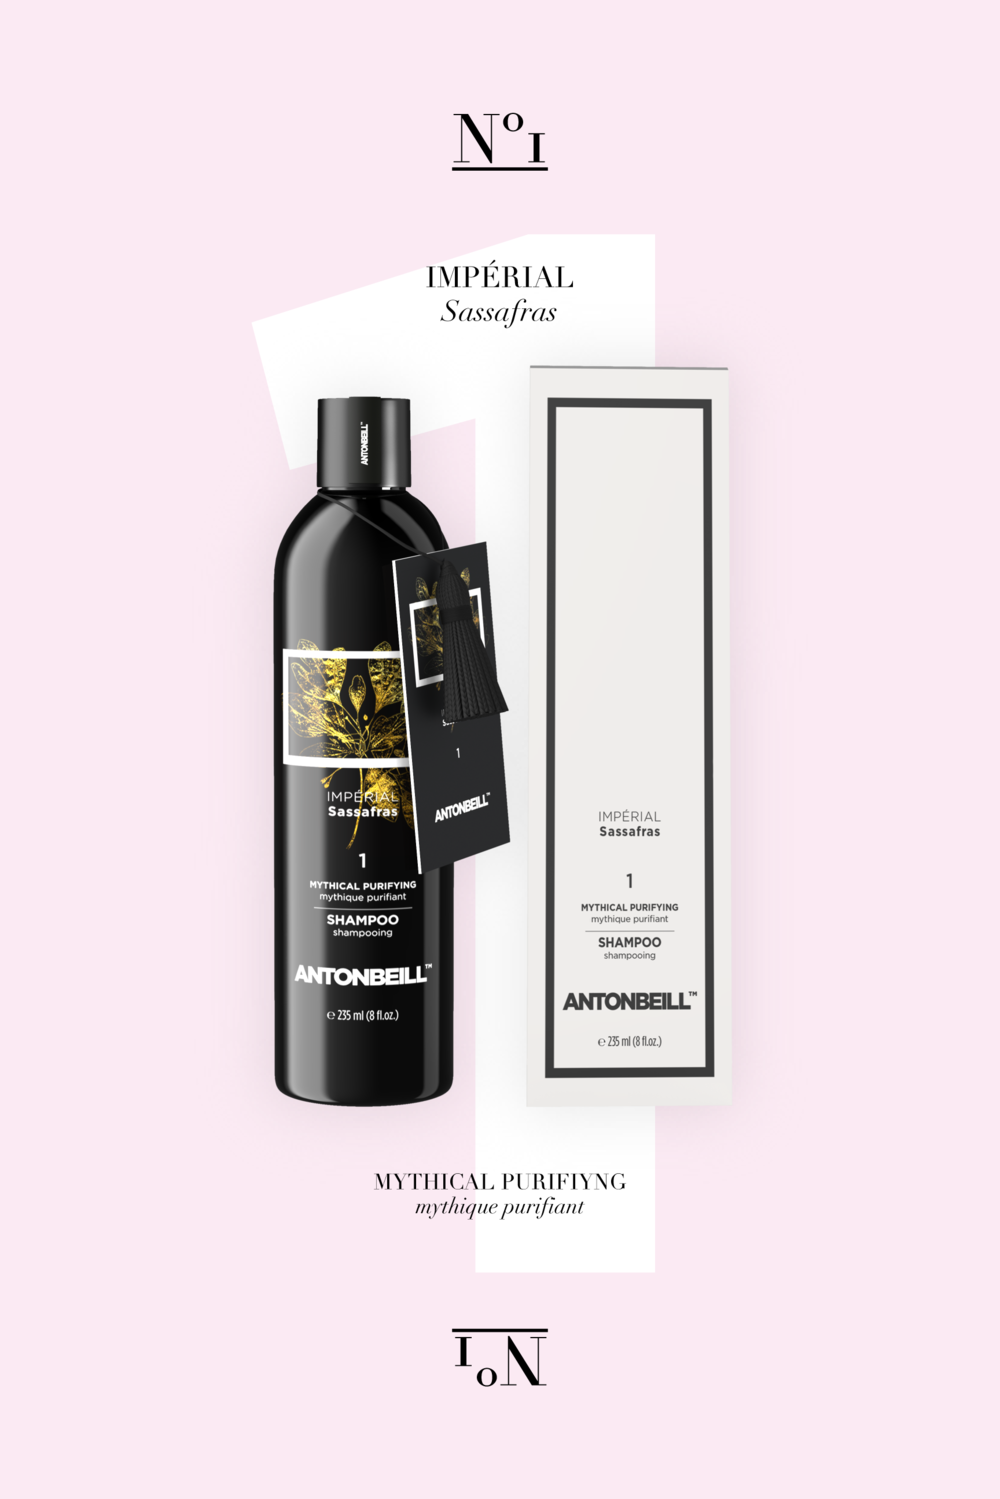 Nº1 Impérial Sassafras Shampoo - Perfect Cleansing, Nutrition & Purification